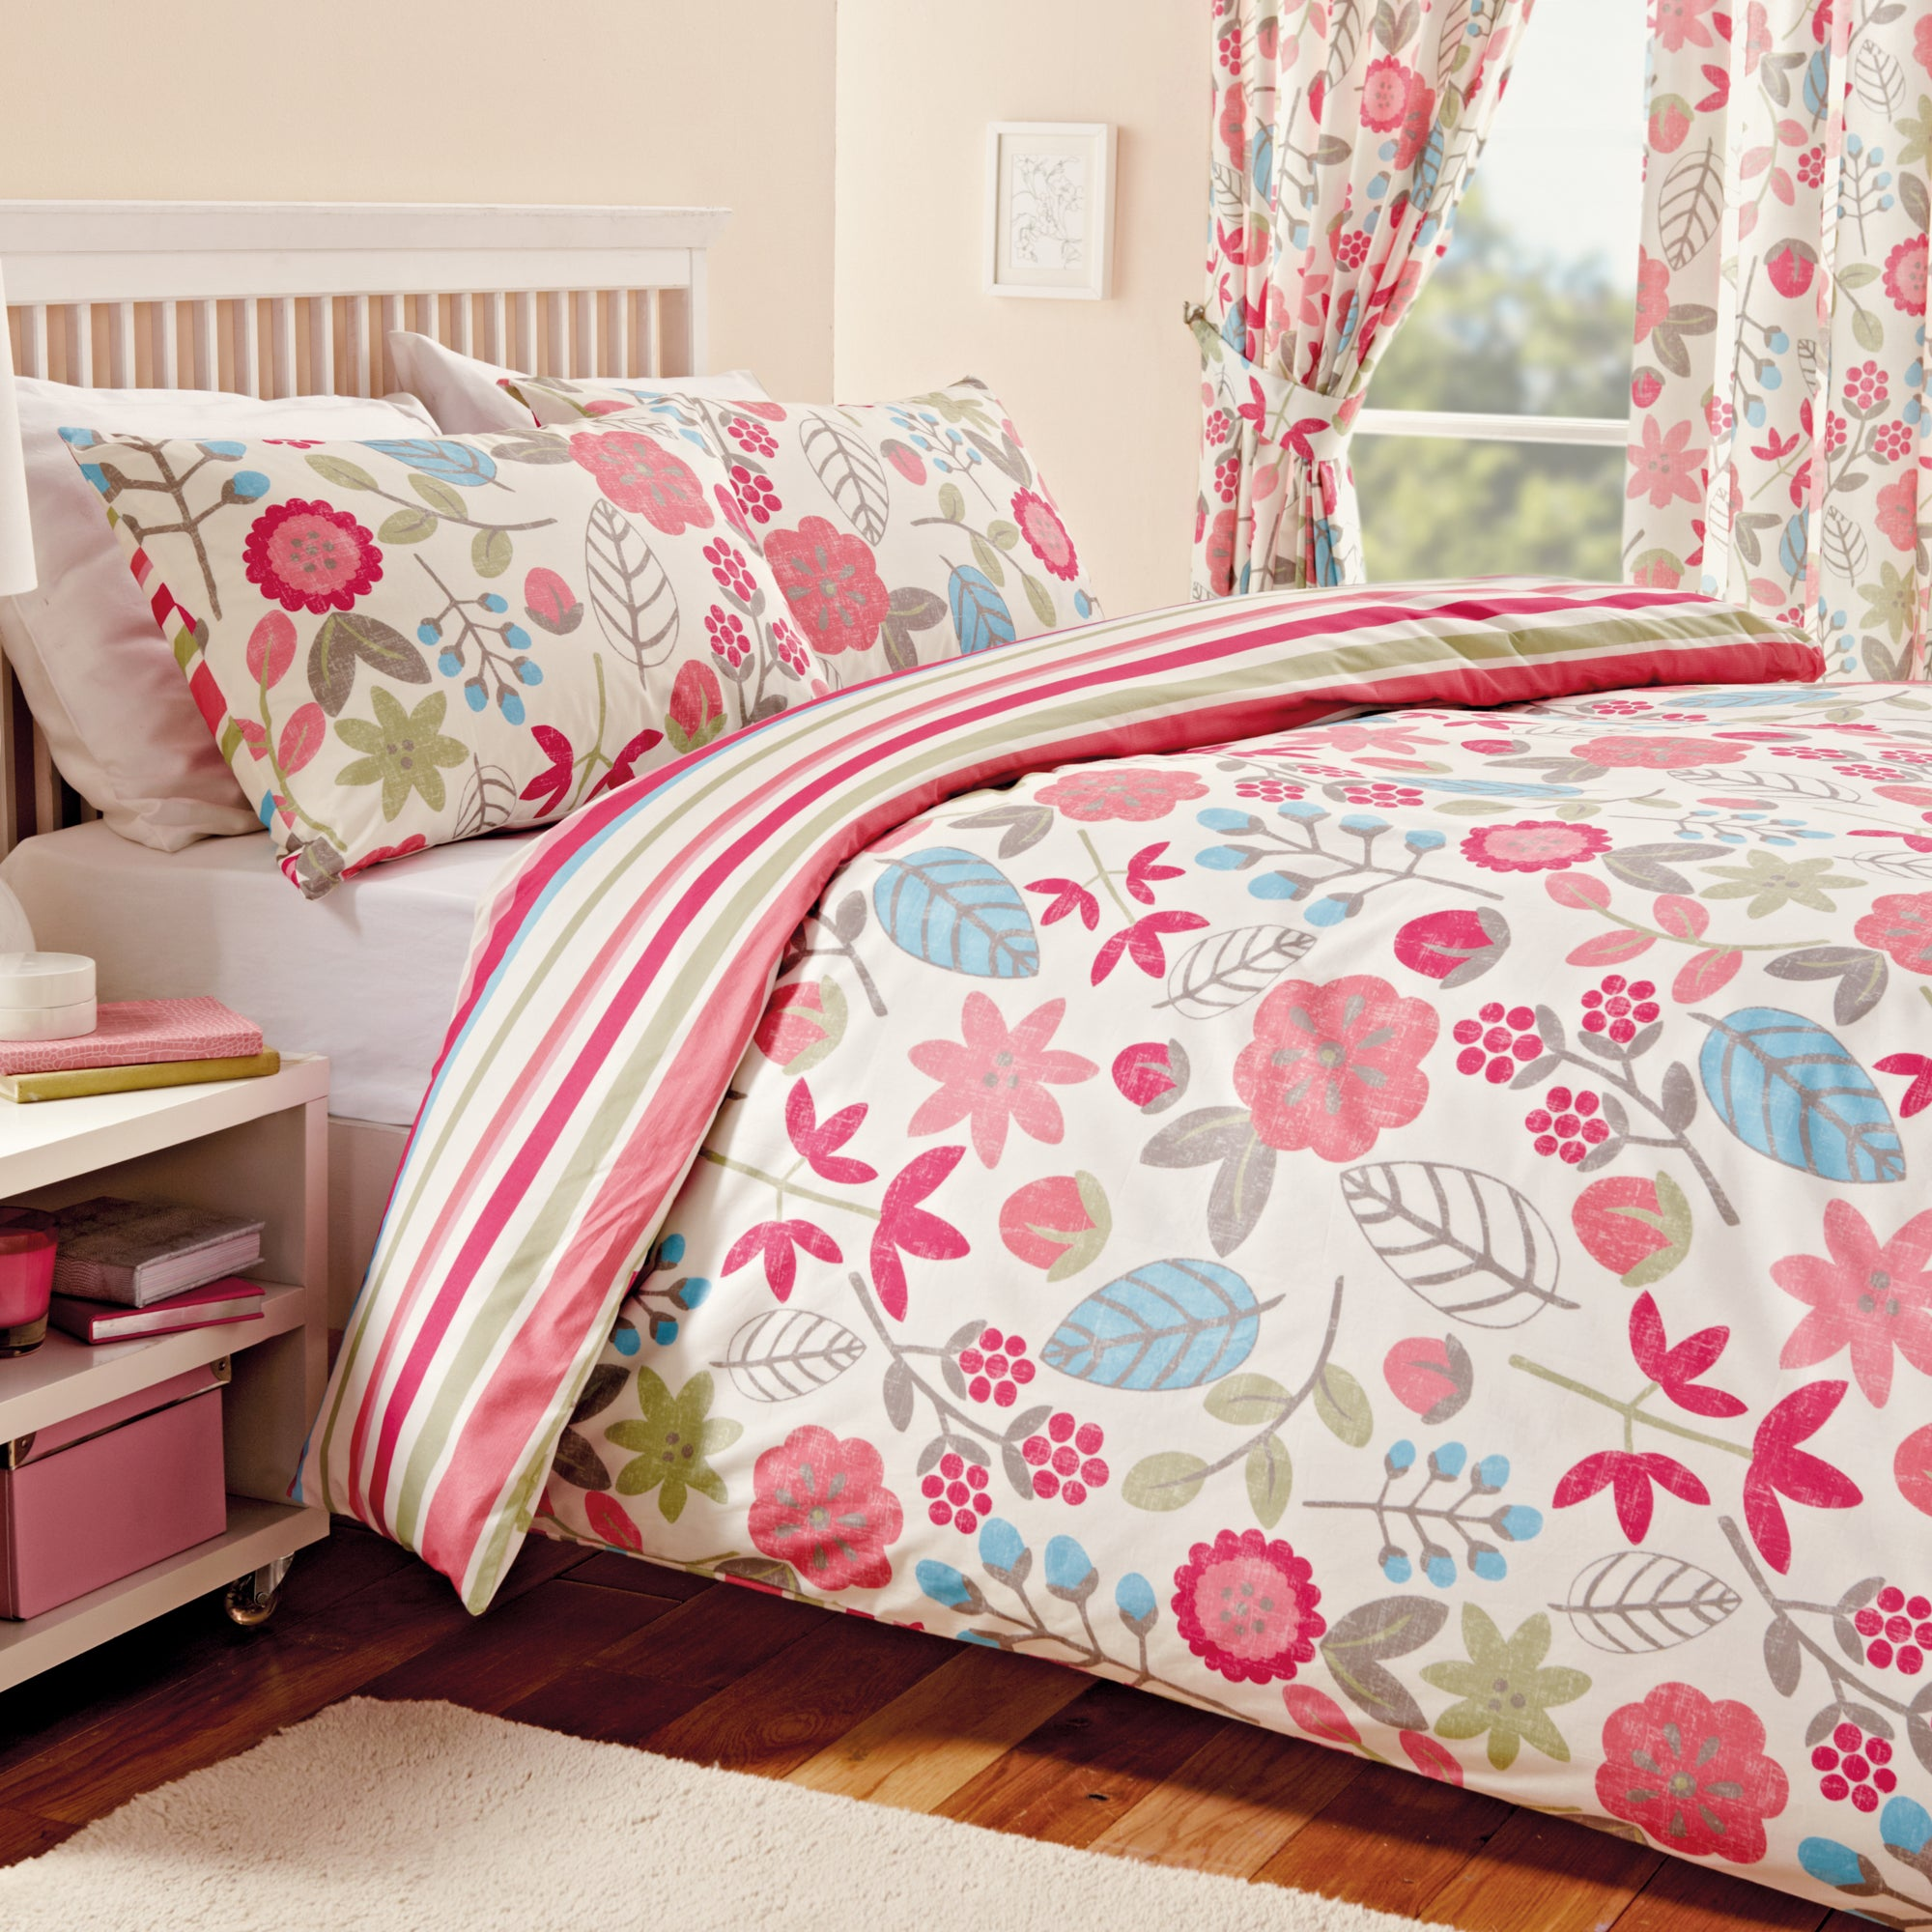 Tutti Frutti Collection Duvet Cover Set